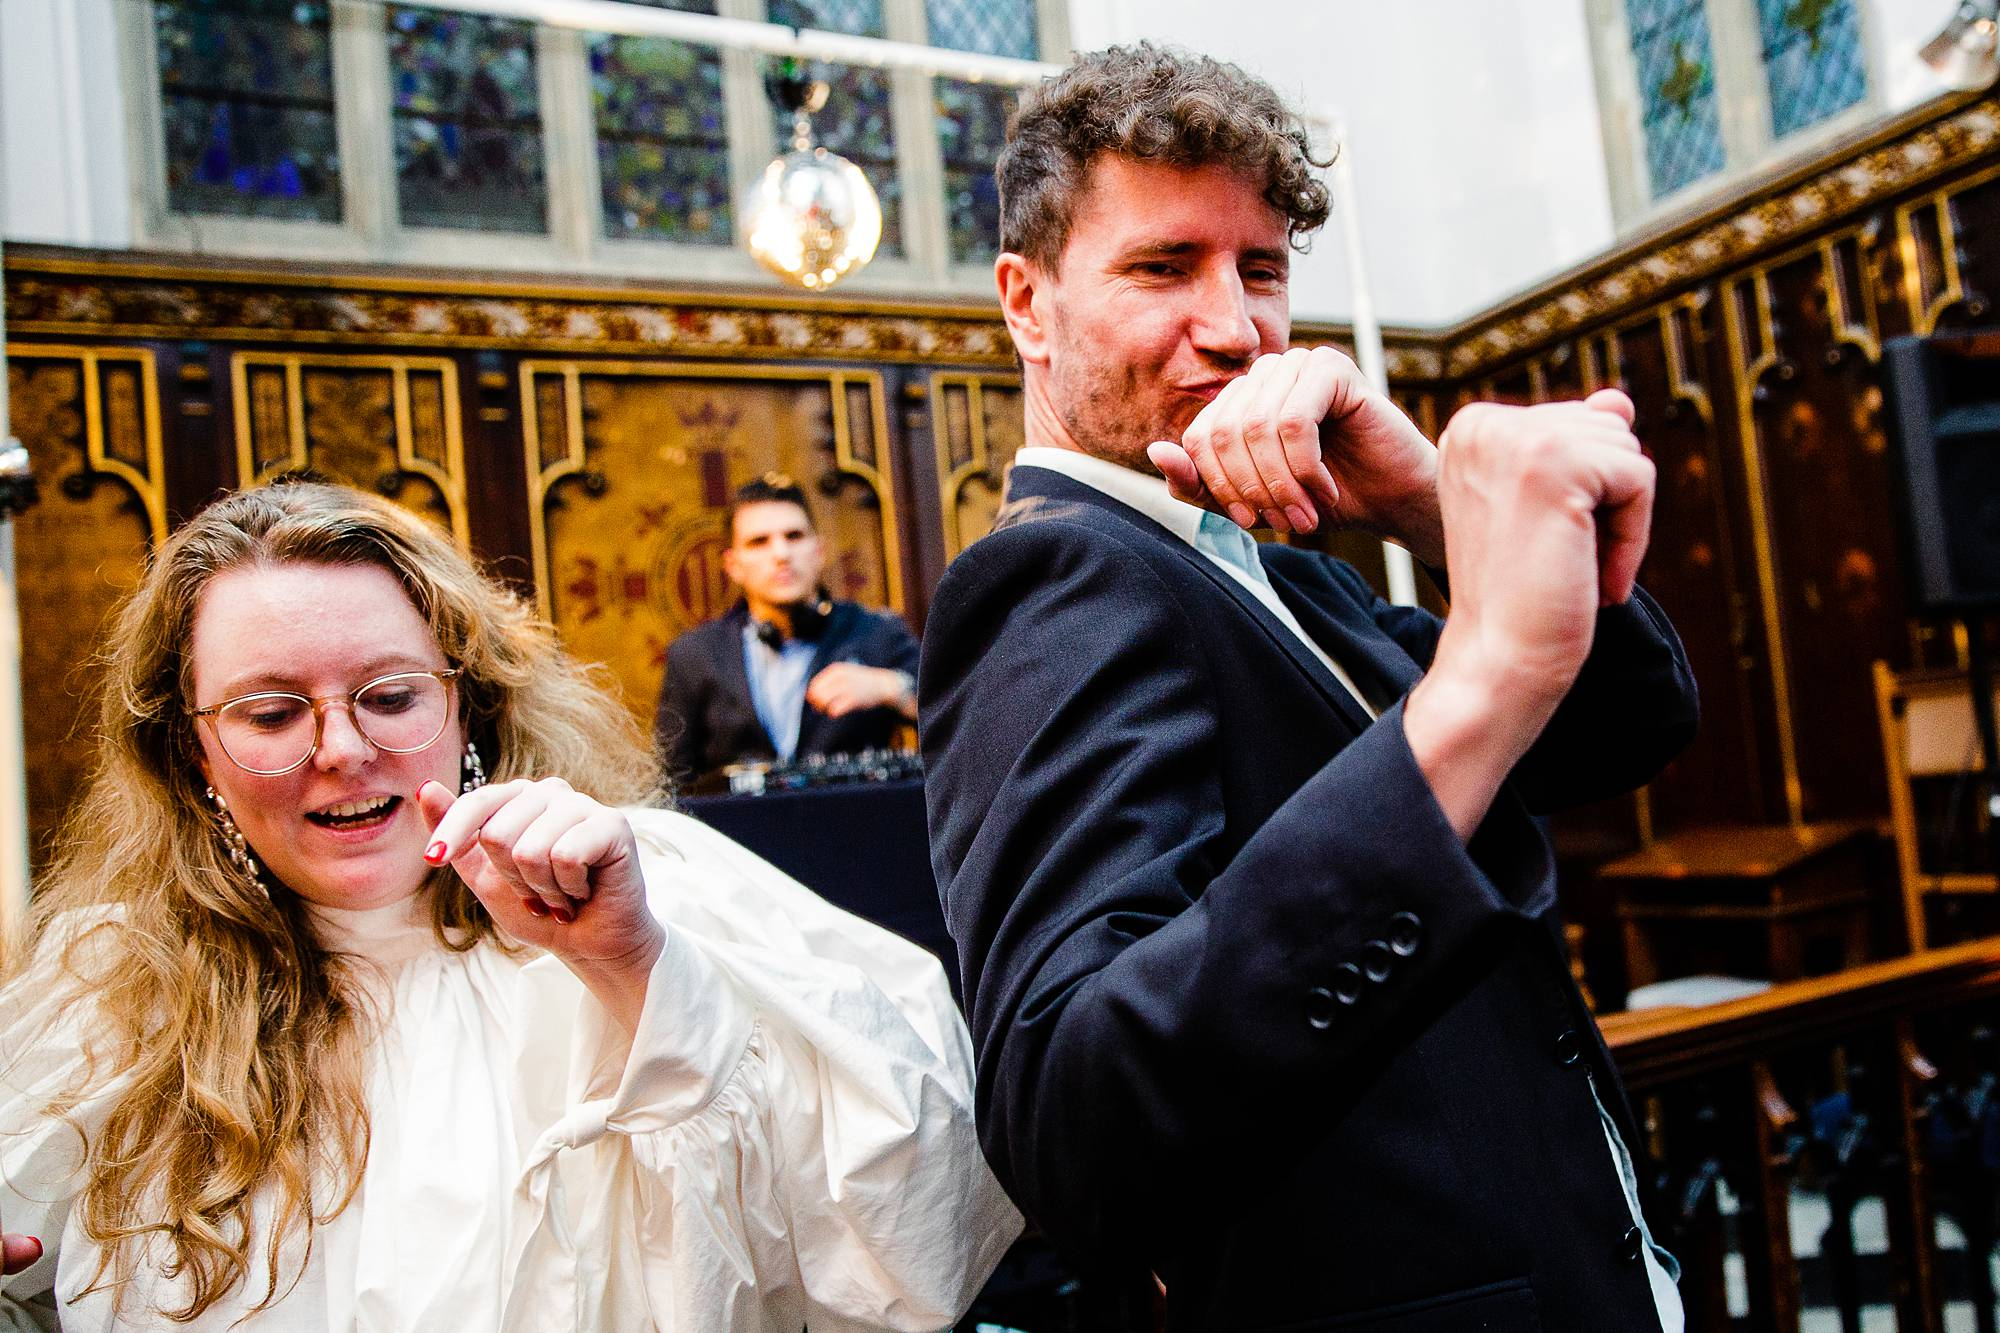 The Old Church London Wedding Photographer_0133.jpg